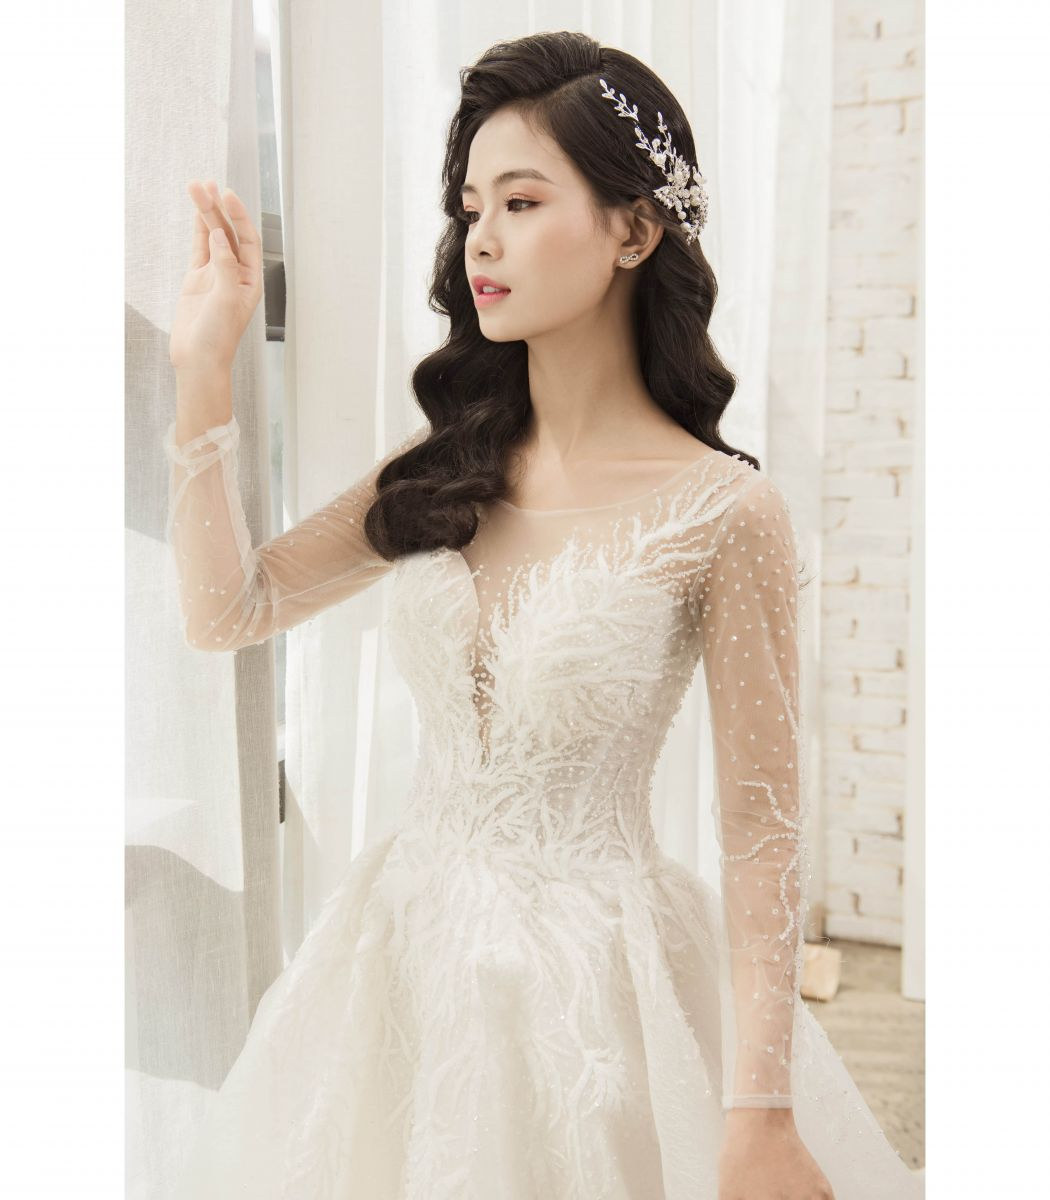 Dreamy Wedding Dress - Váy Nhũ Mưa